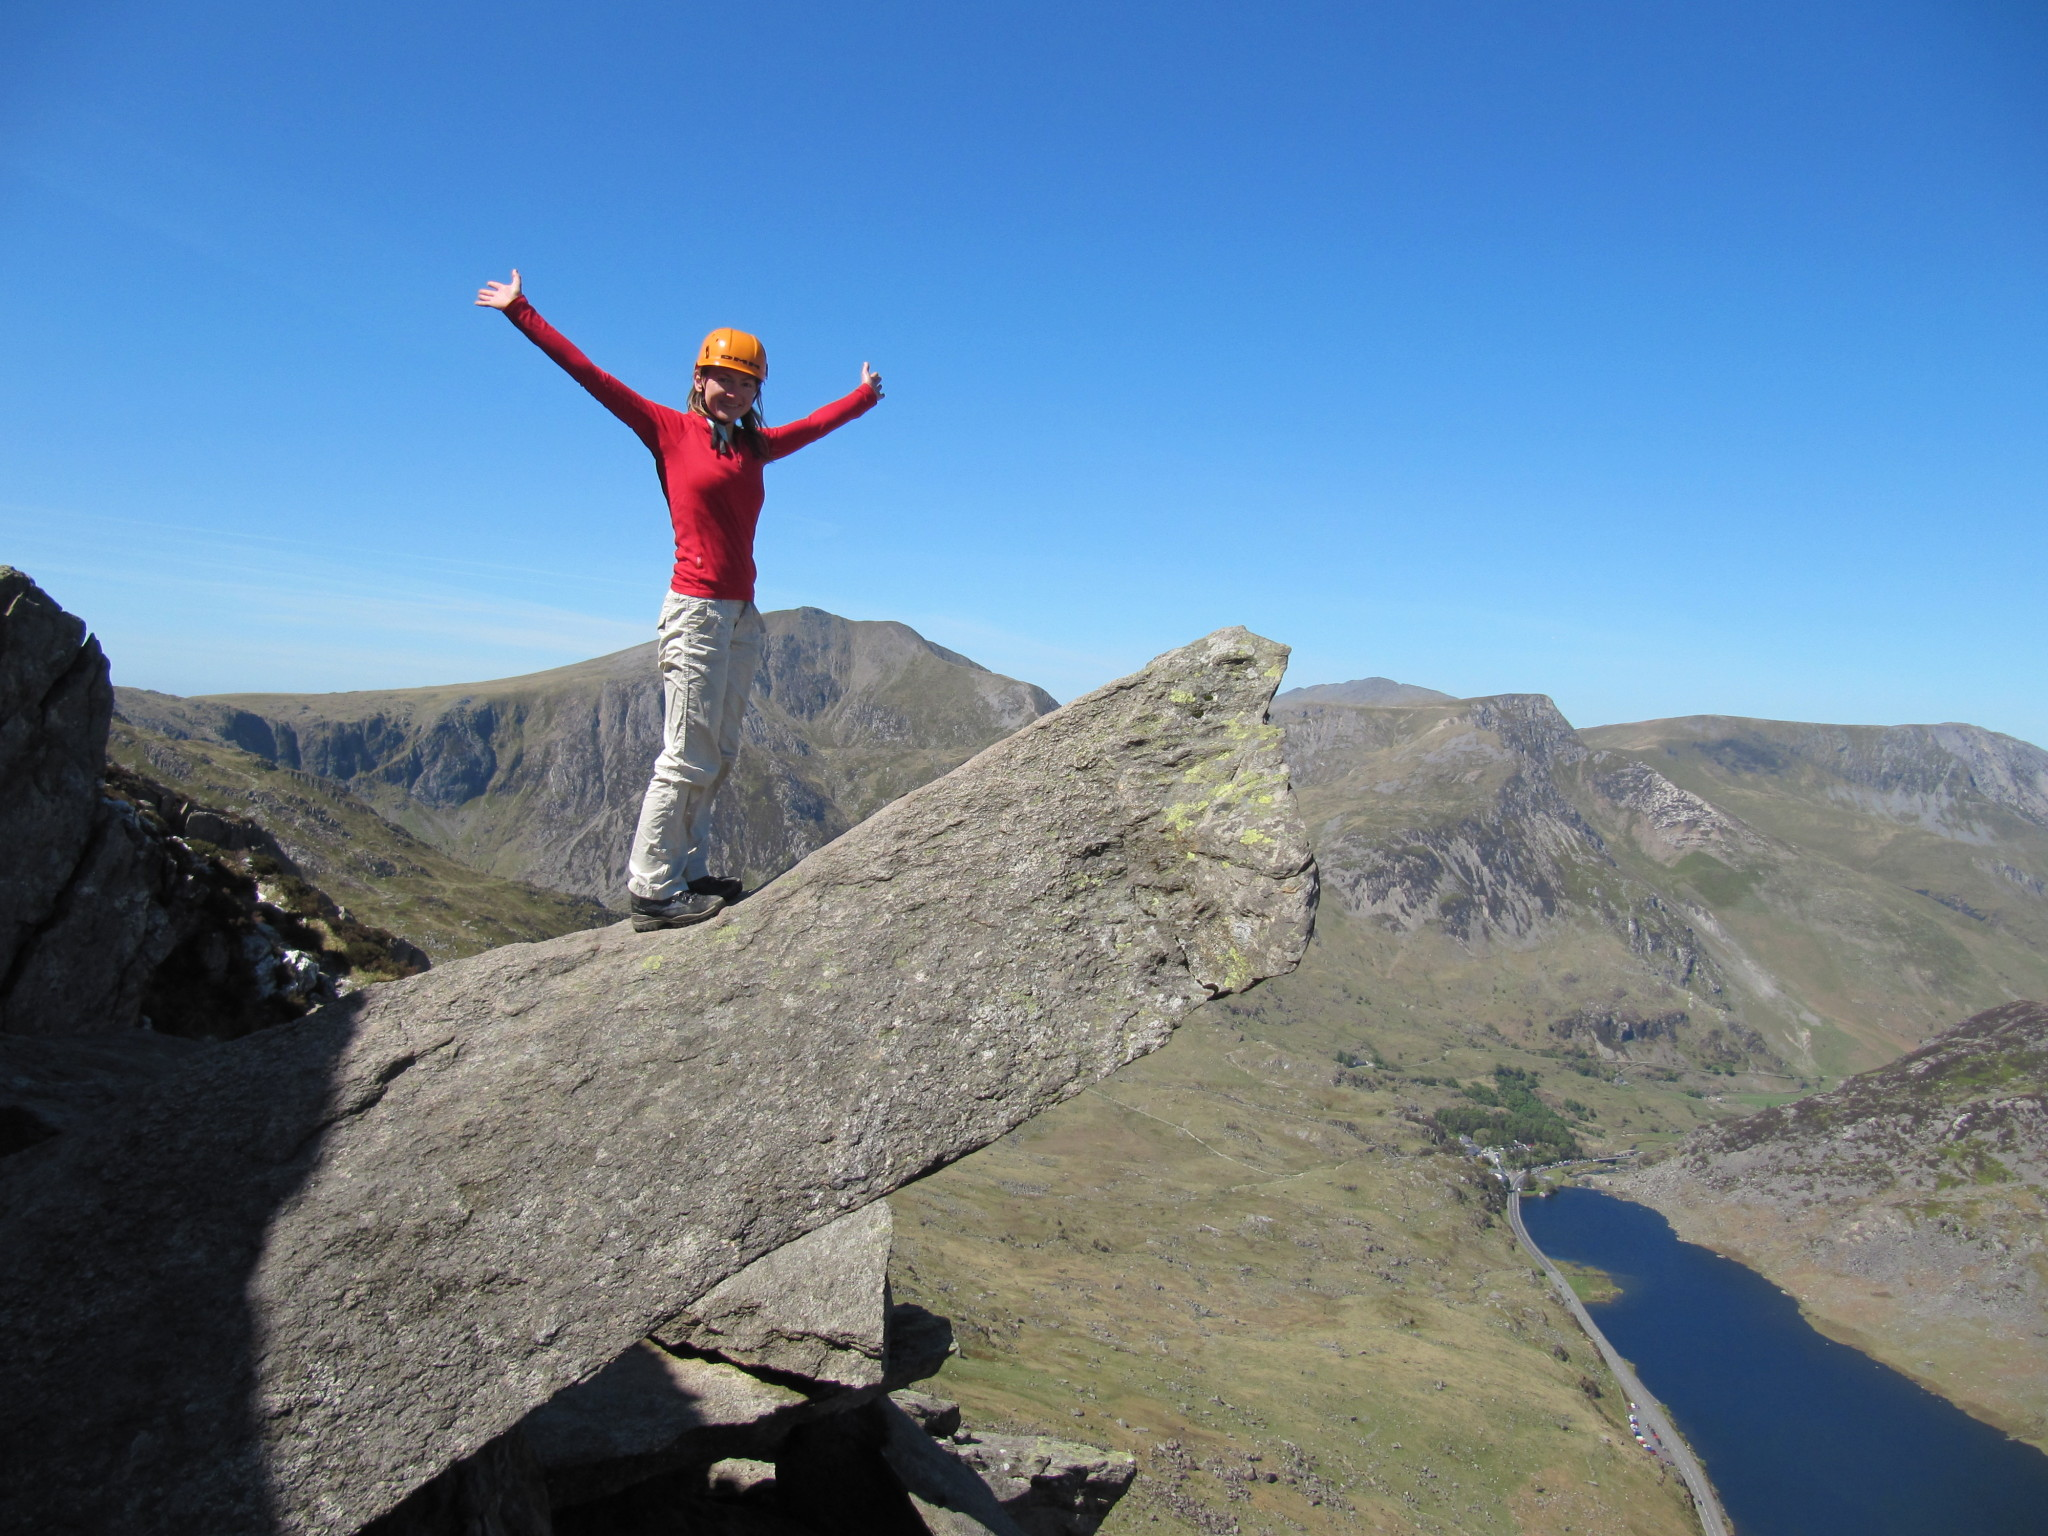 A scrambler stands confidently arms-outstretched on The Cannon on the North Ridge of Tryfan during a scrambling course